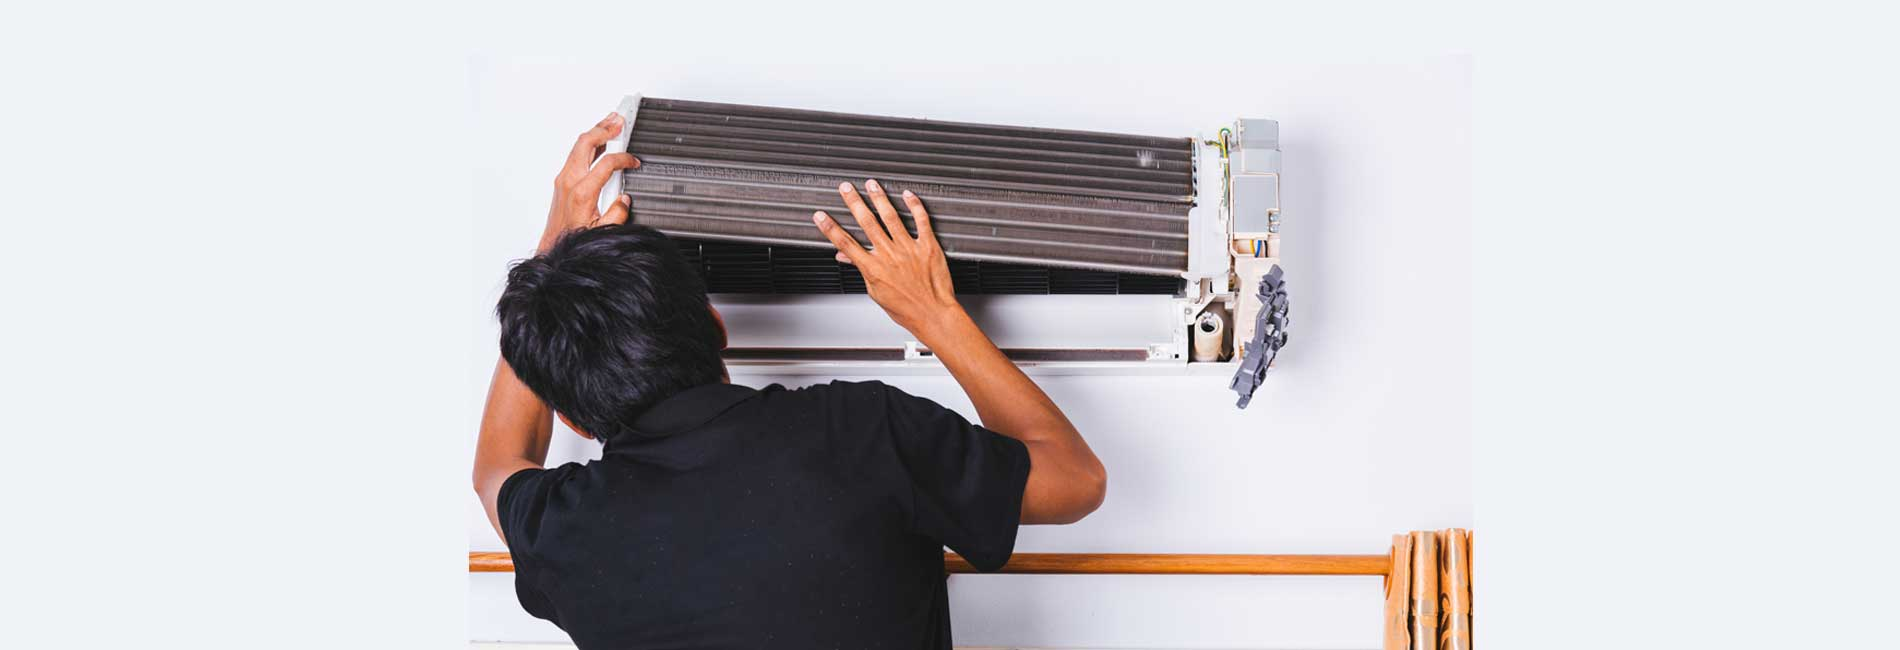 Air Condition Repair in Nanmangalam